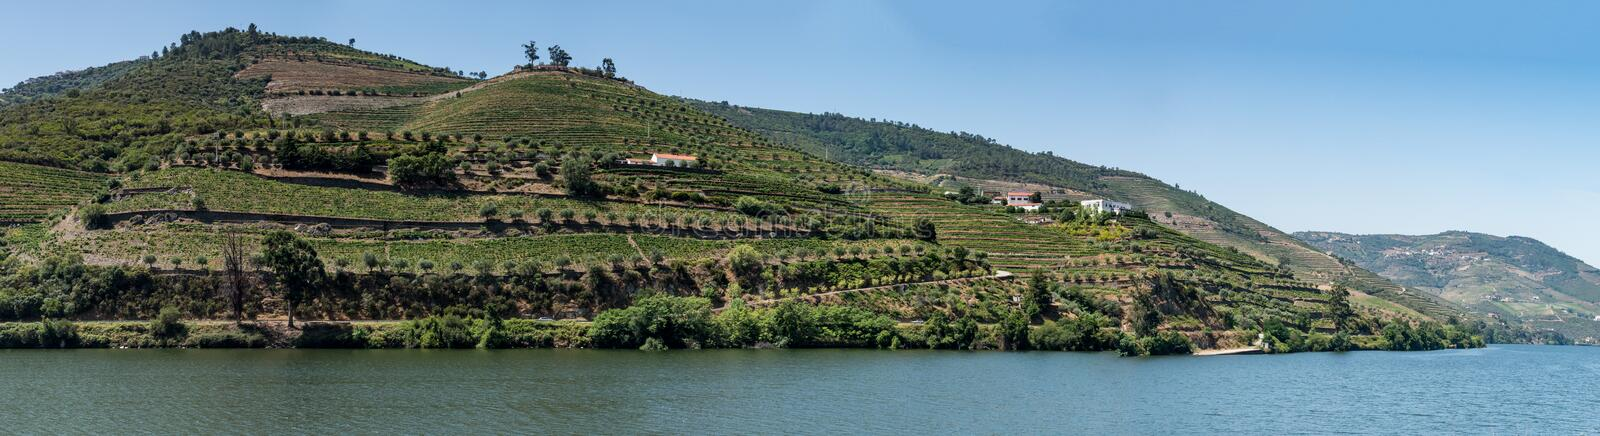 Point of view shot of terraced vineyards in Douro Valley. Point of view shot from historic train in Douro region, Portugal. Features a wide view of terraced royalty free stock photo